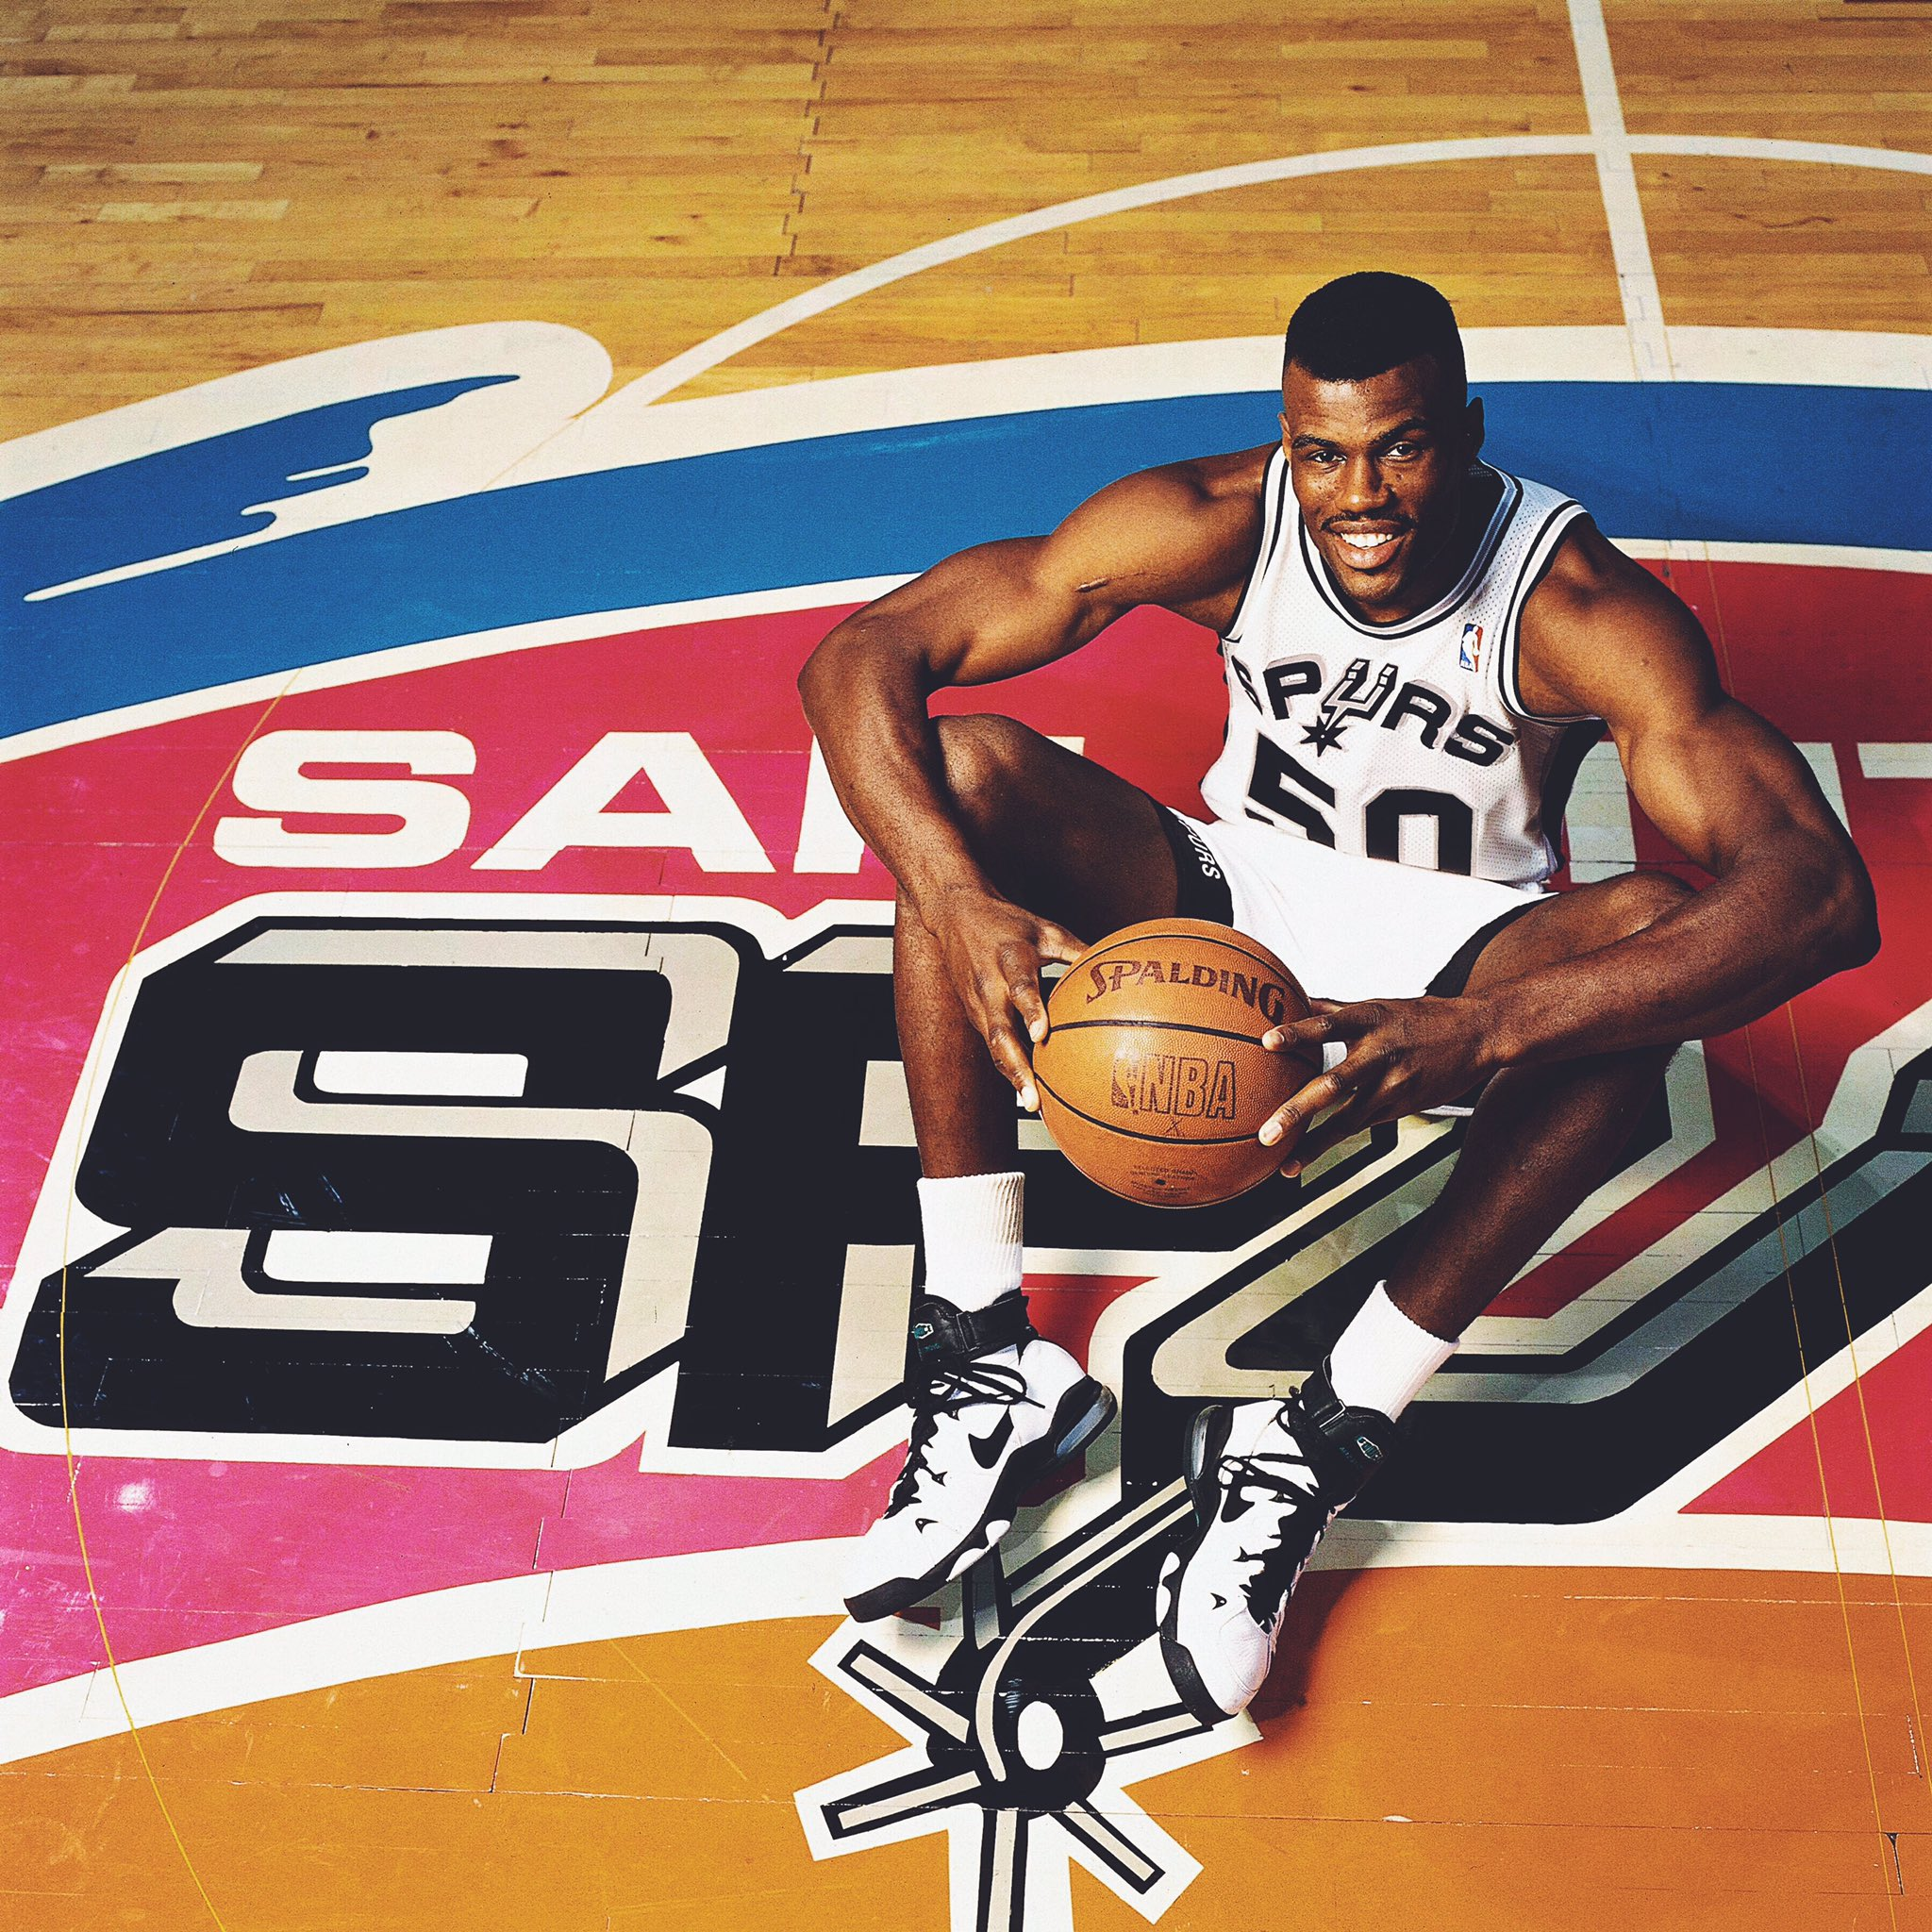 RT to join us in wishing  @DavidtheAdmiral a very happy birthday! �� https://t.co/YK2dpKalbo